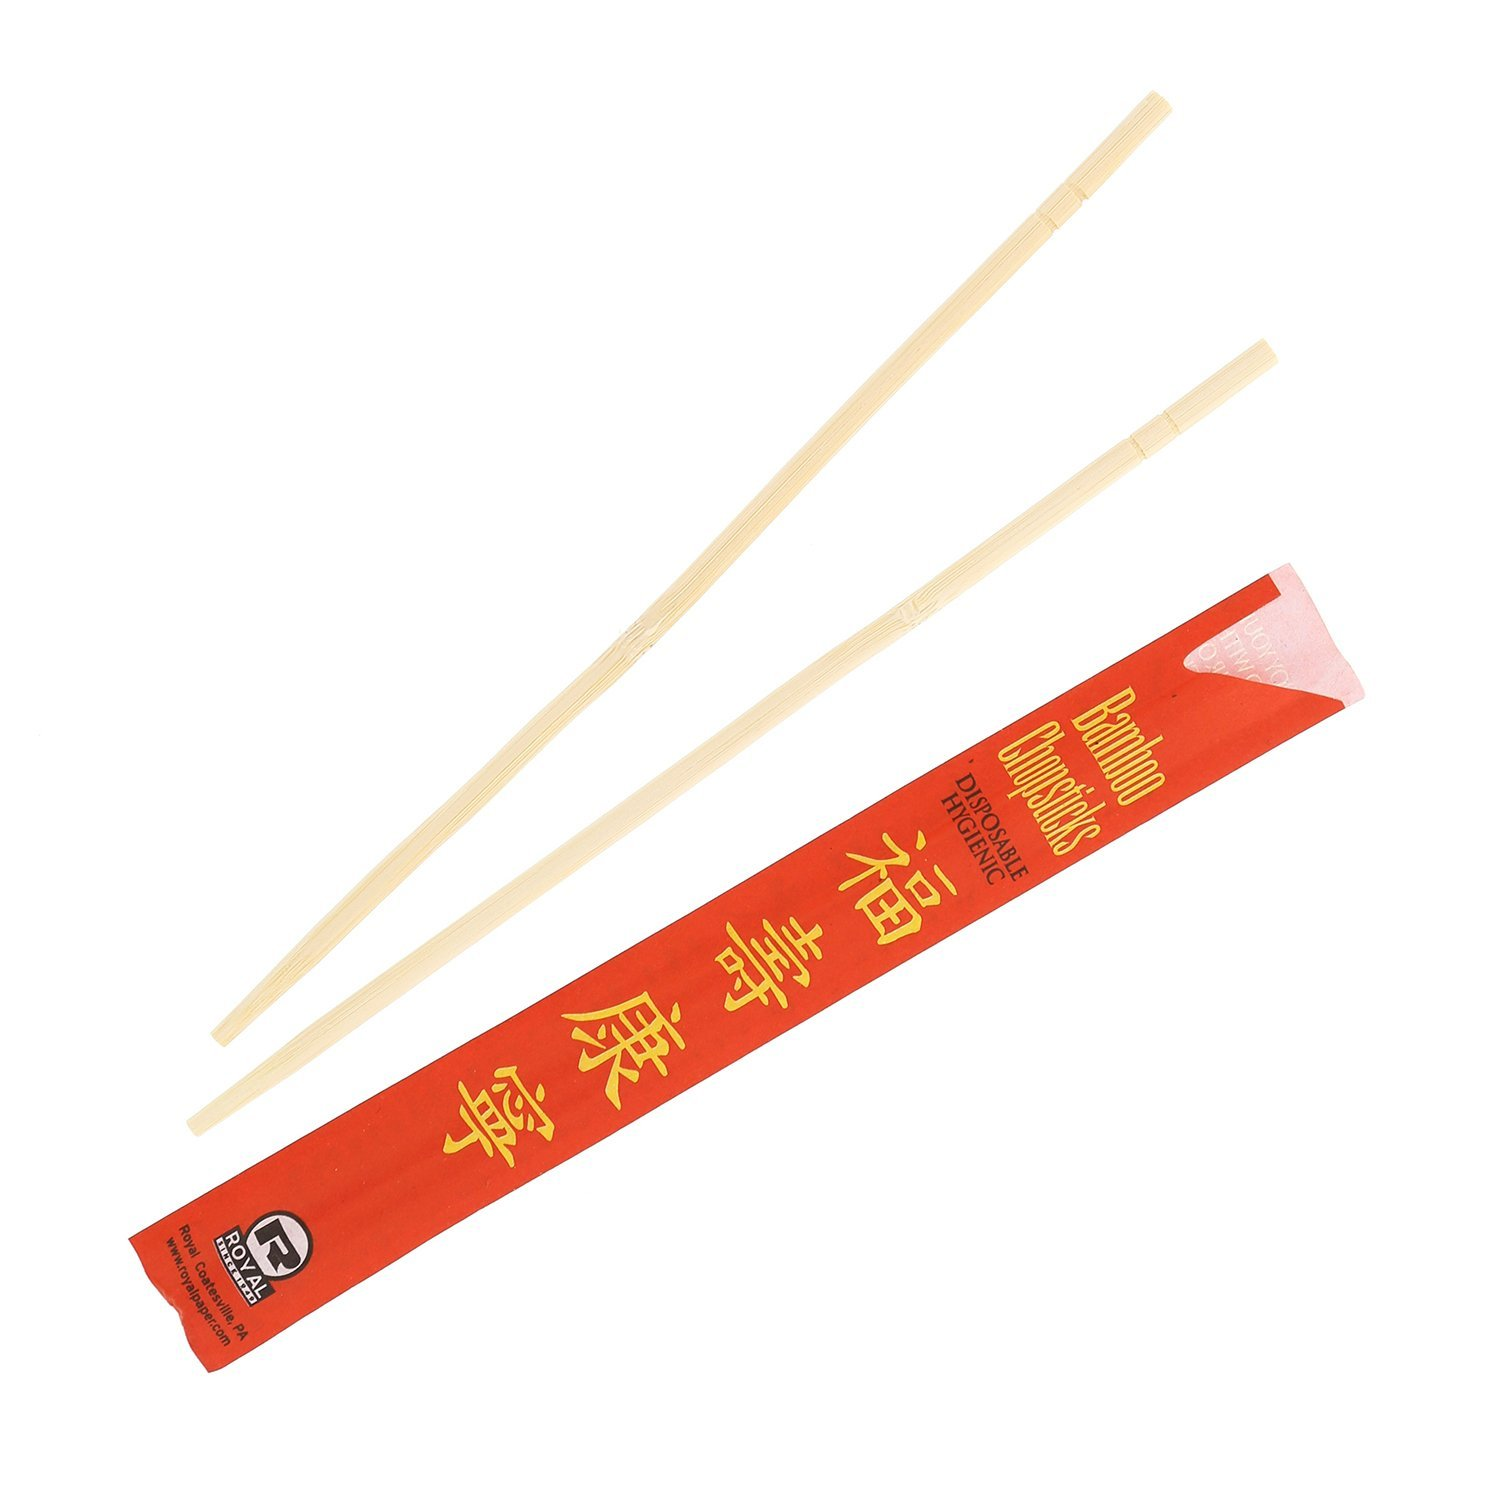 Royal Paper Premium Disposable Bamboo Chopsticks Review